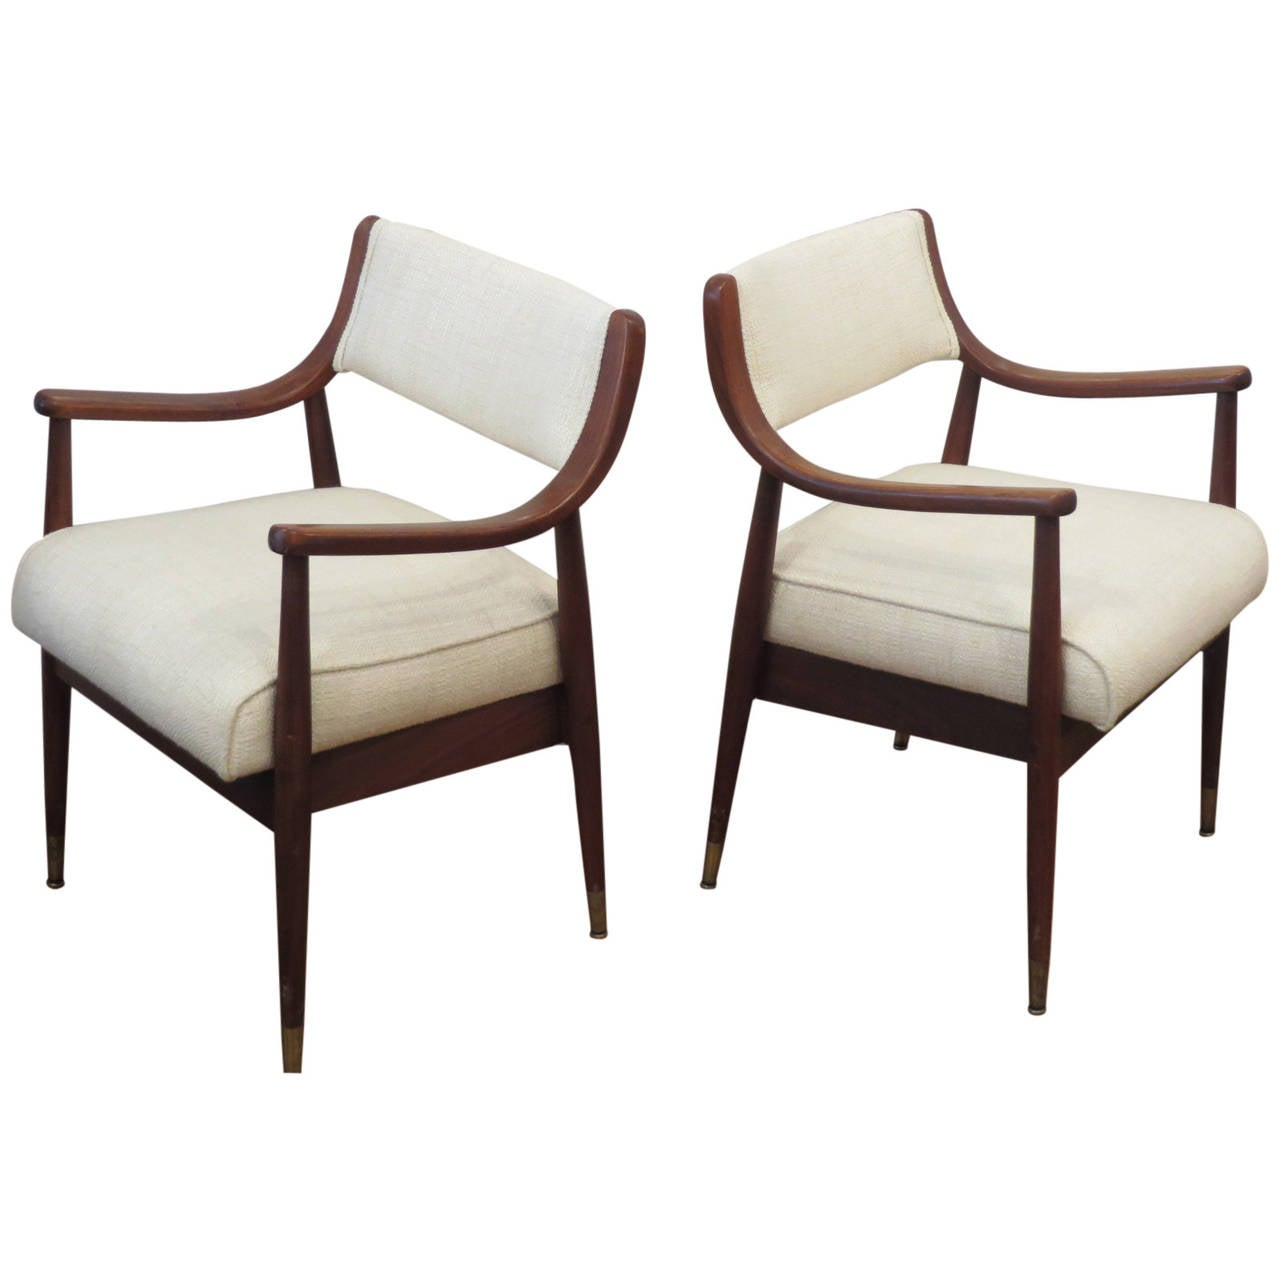 Pair Of Mid Century Chairs At 1stdibs